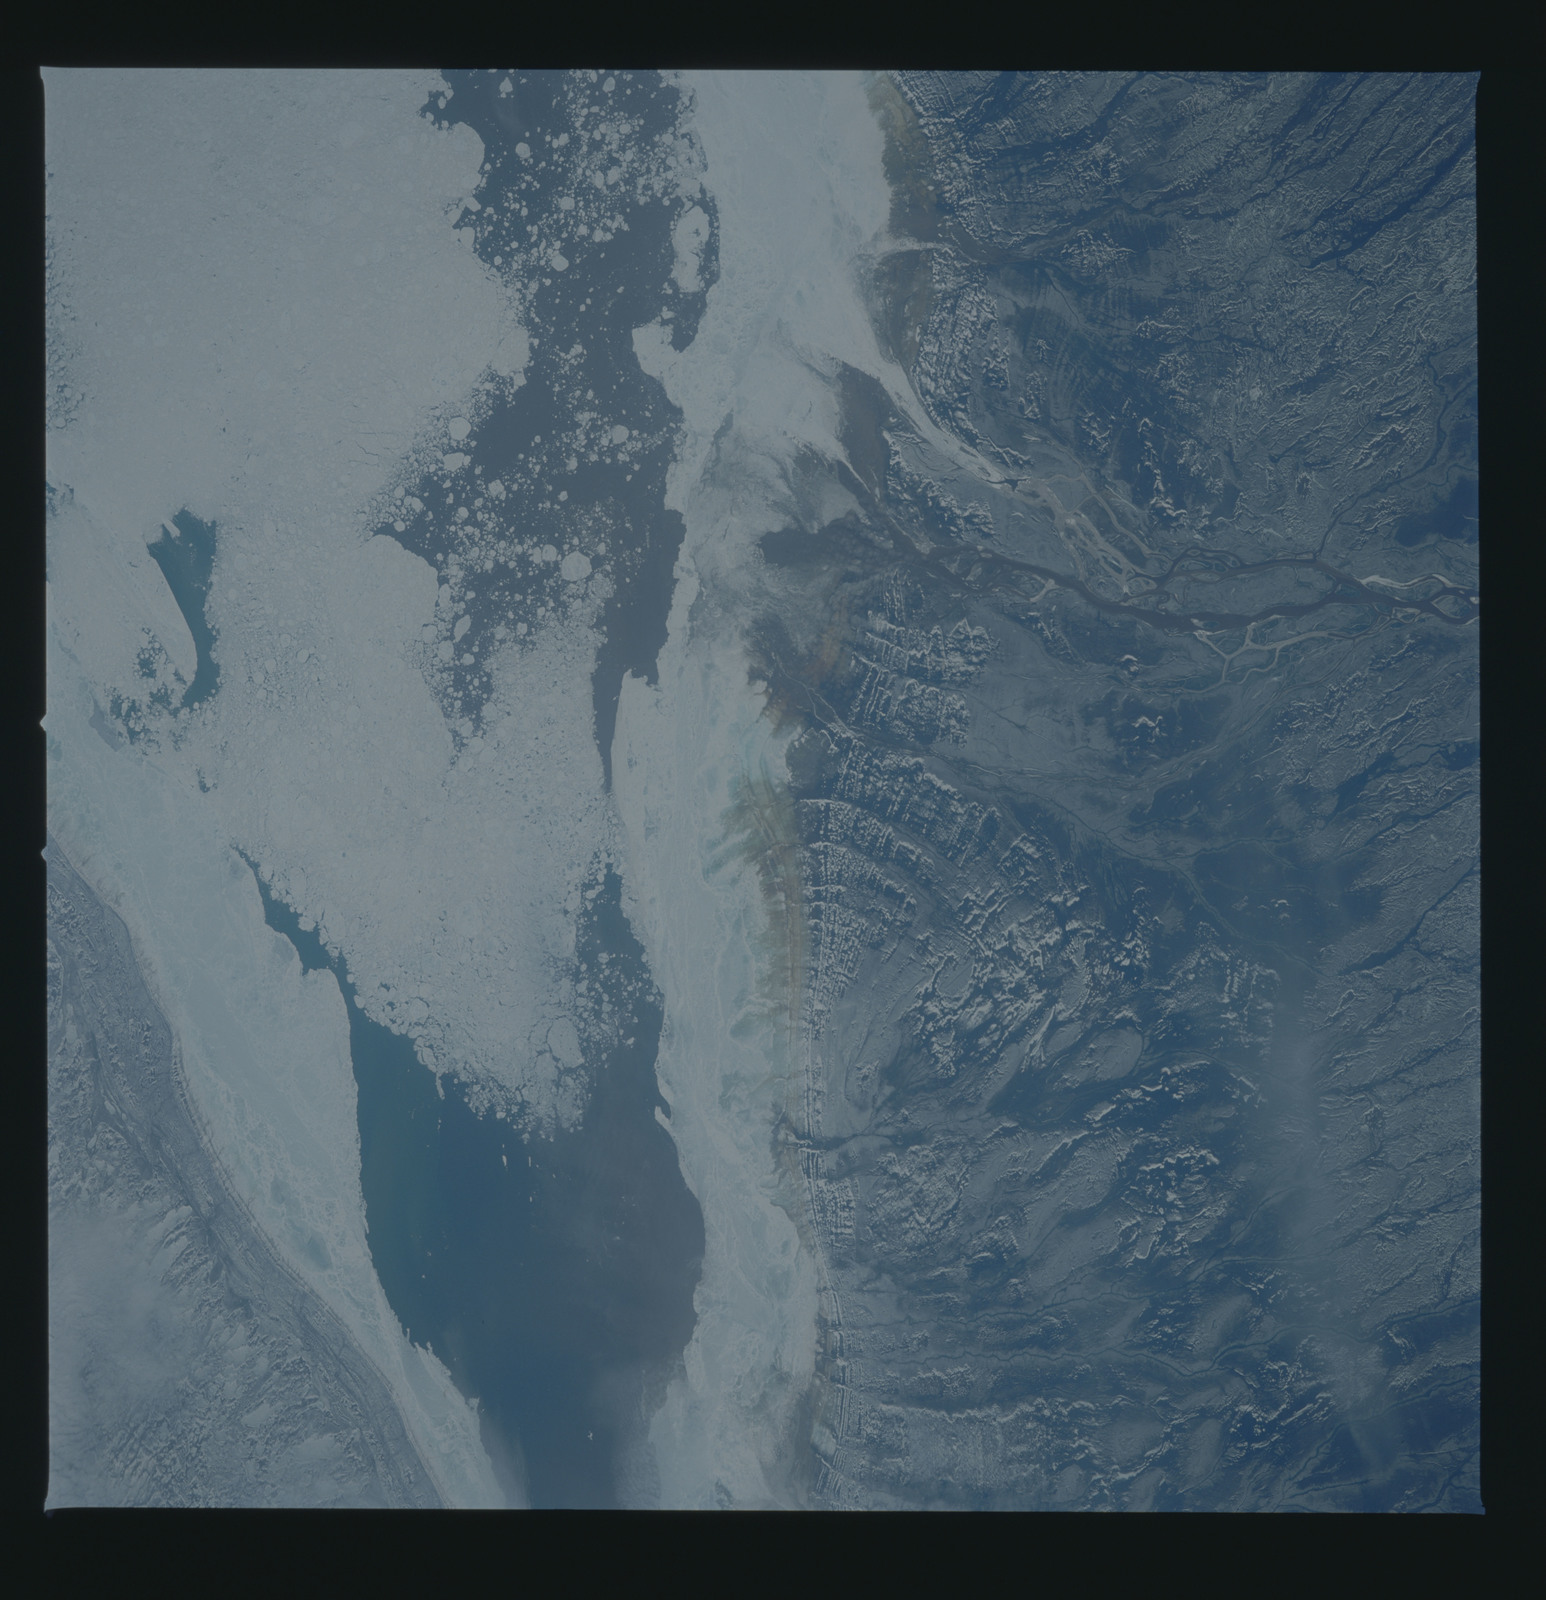 51B-53-065 - STS-51B - STS-51B earth observation